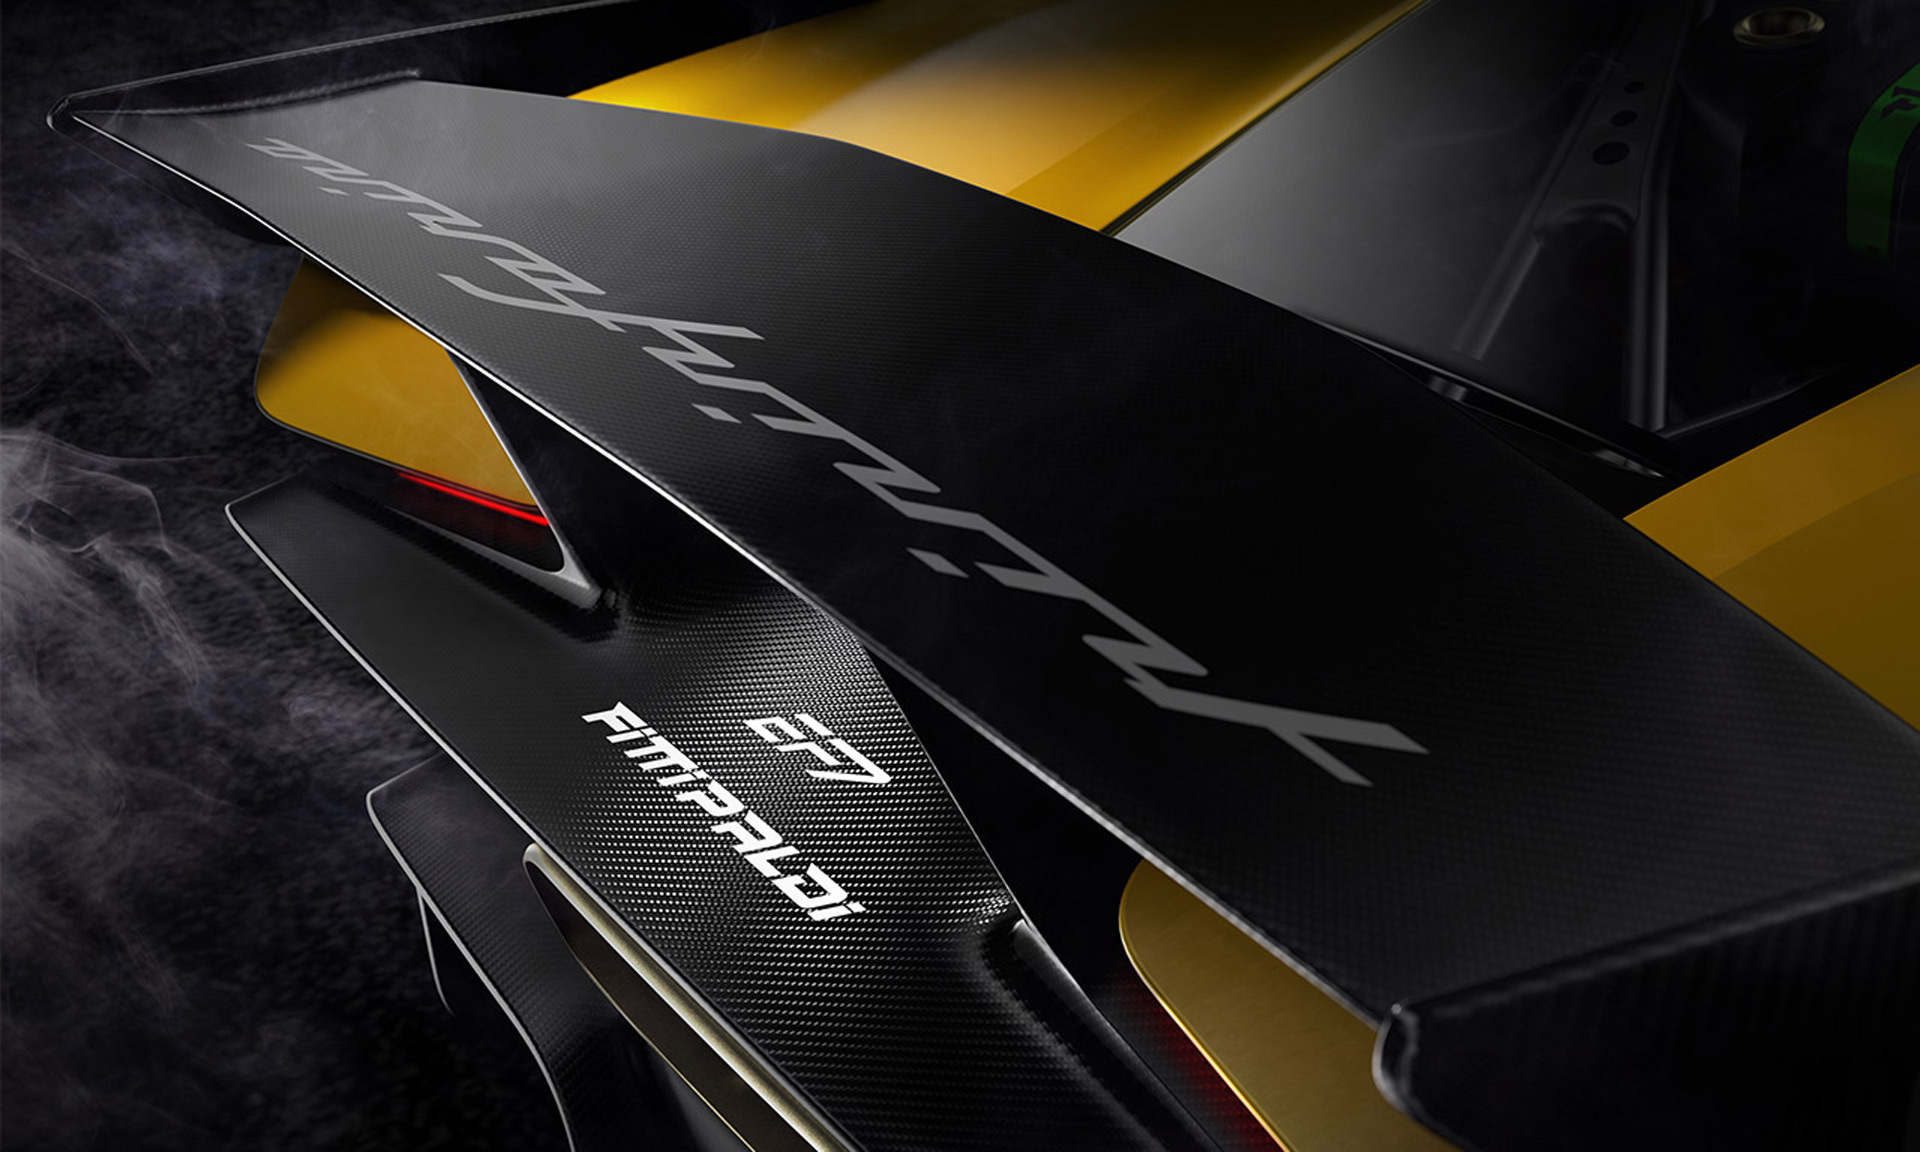 New Supercar To Be First Of A Series Of Models From